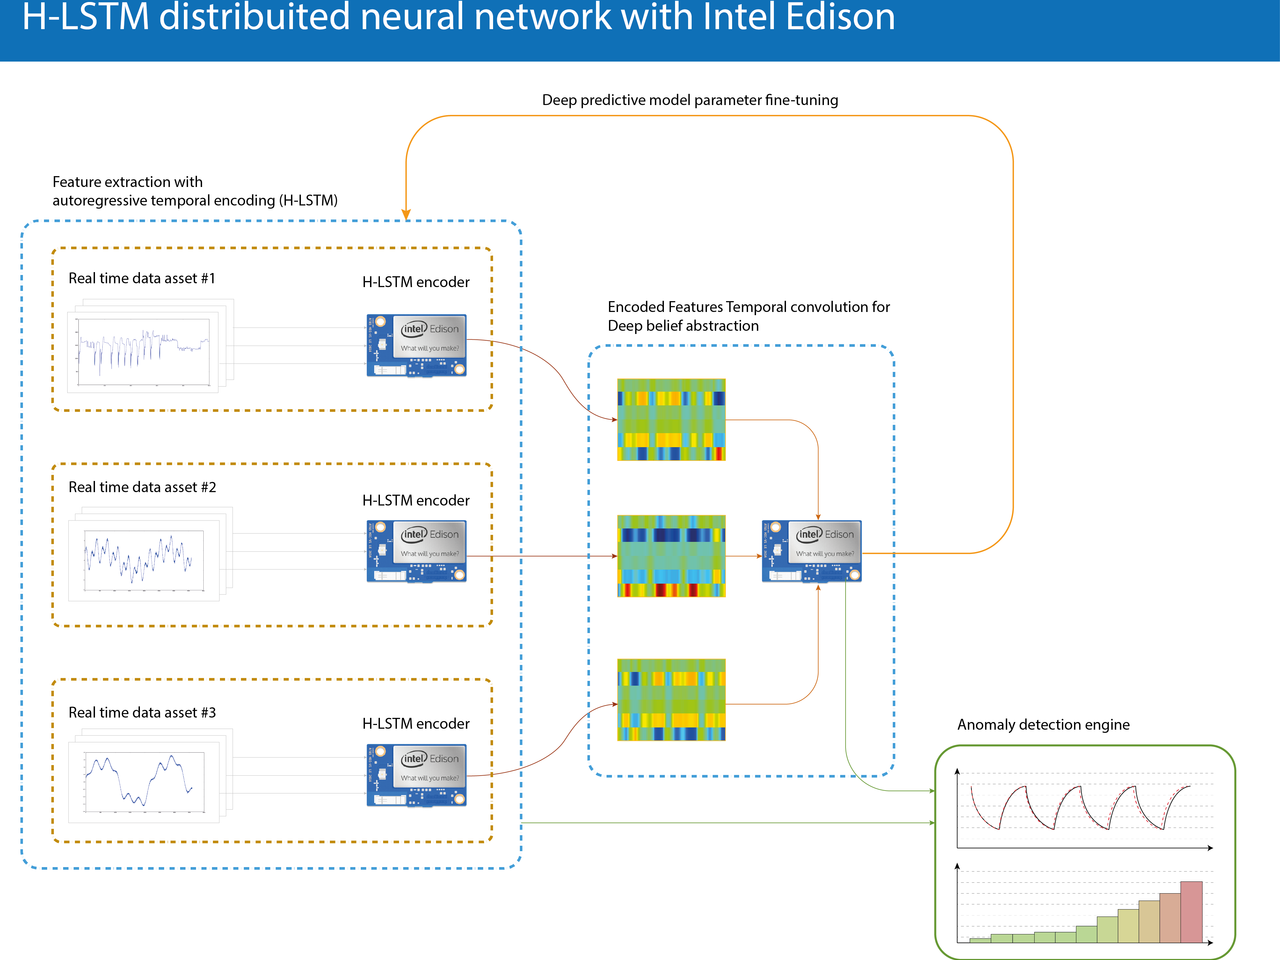 H-LSTM distribuited neural network with Intel Edison